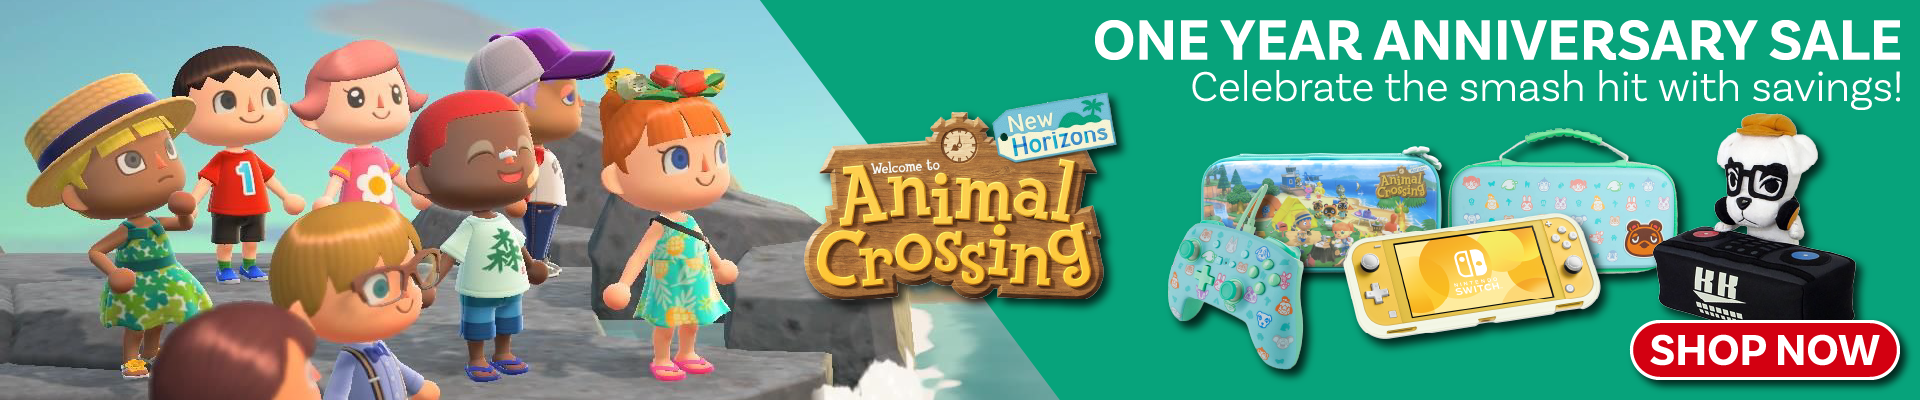 Animal Crossing New Horizons - Anniversary Sale